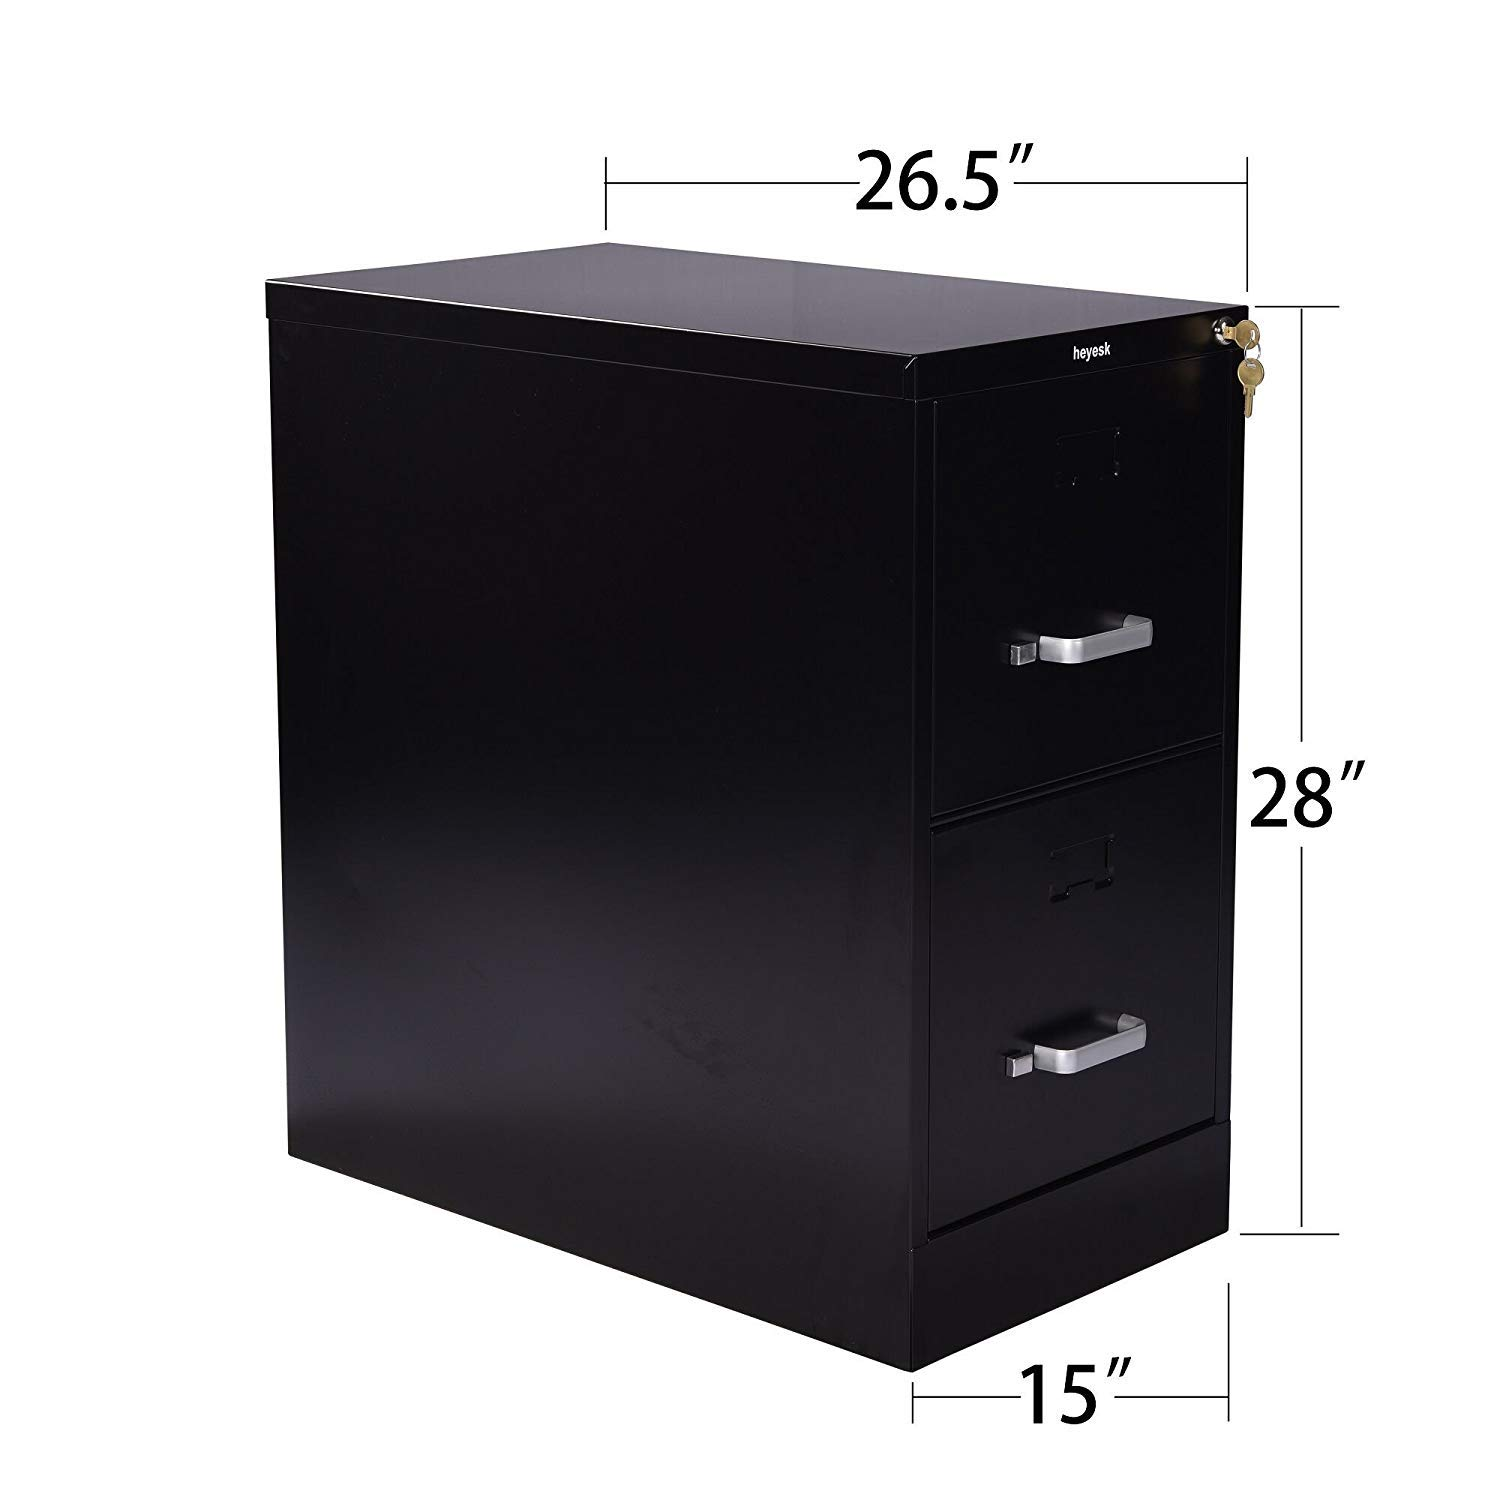 Vertical File Cabinet Modern Metal 2 Drawer with Lock Letter-Size 26.5 Deep Black